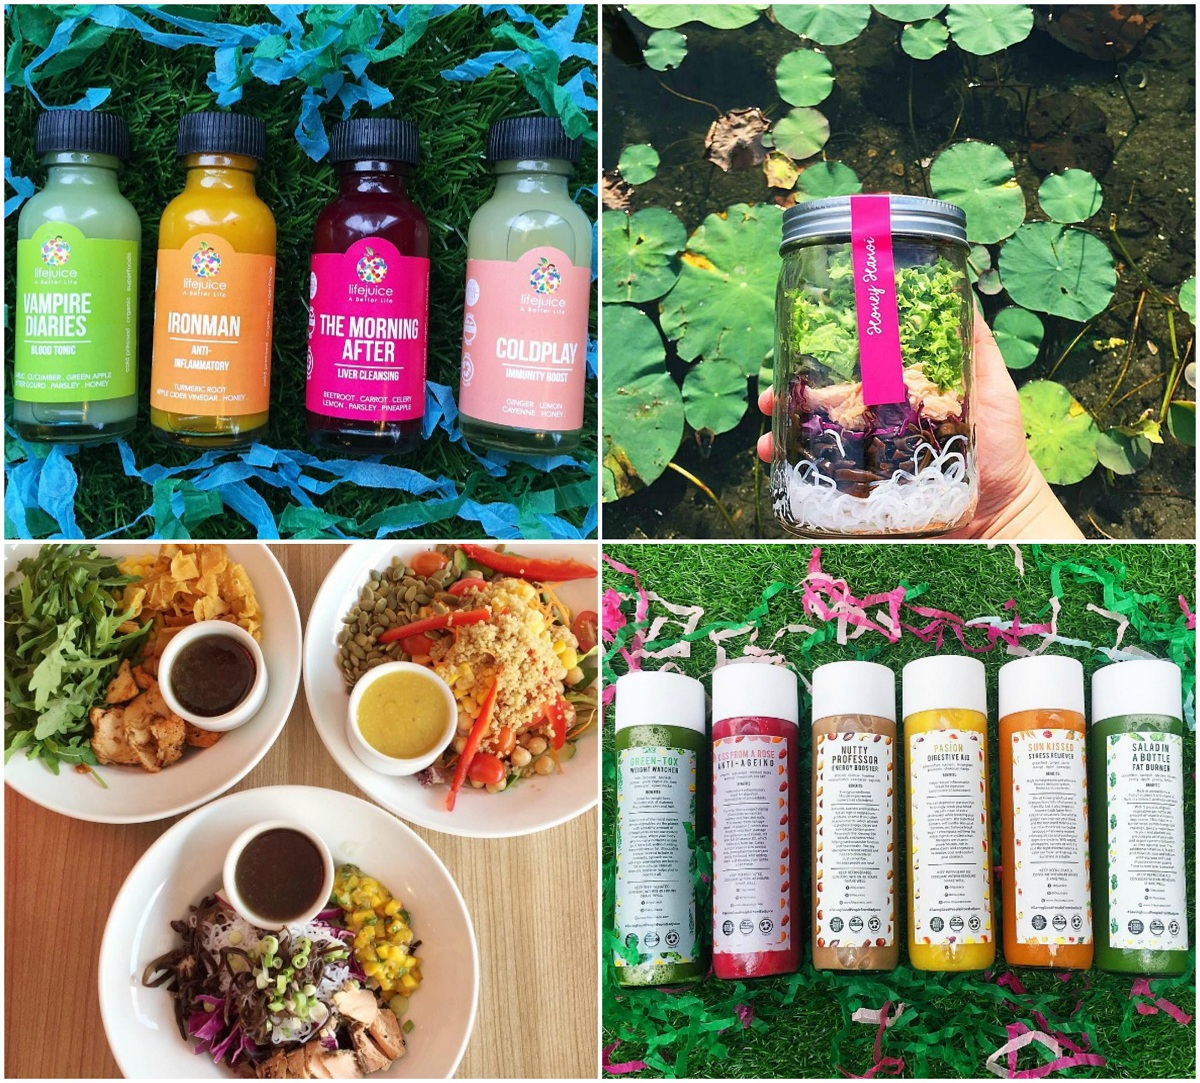 Top 18 Tried And Tested Healthy Delicious Meal Deliveries In Kl Kotak Makan Duo Sunday Green 15 Lifejuice Co